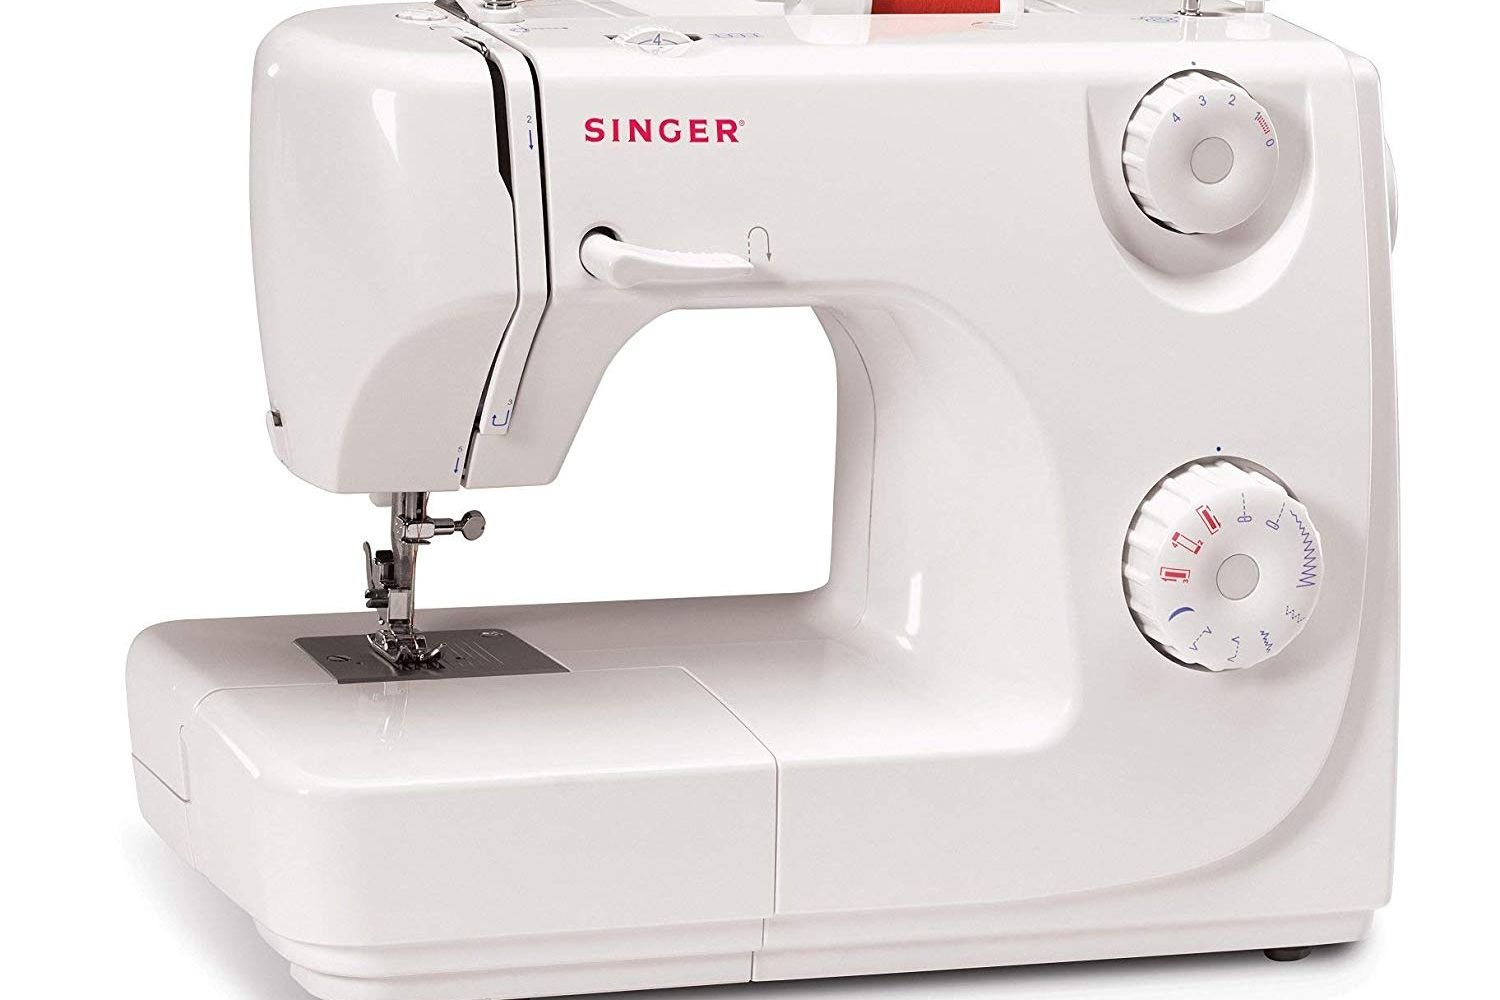 Singer Brilliance 8280